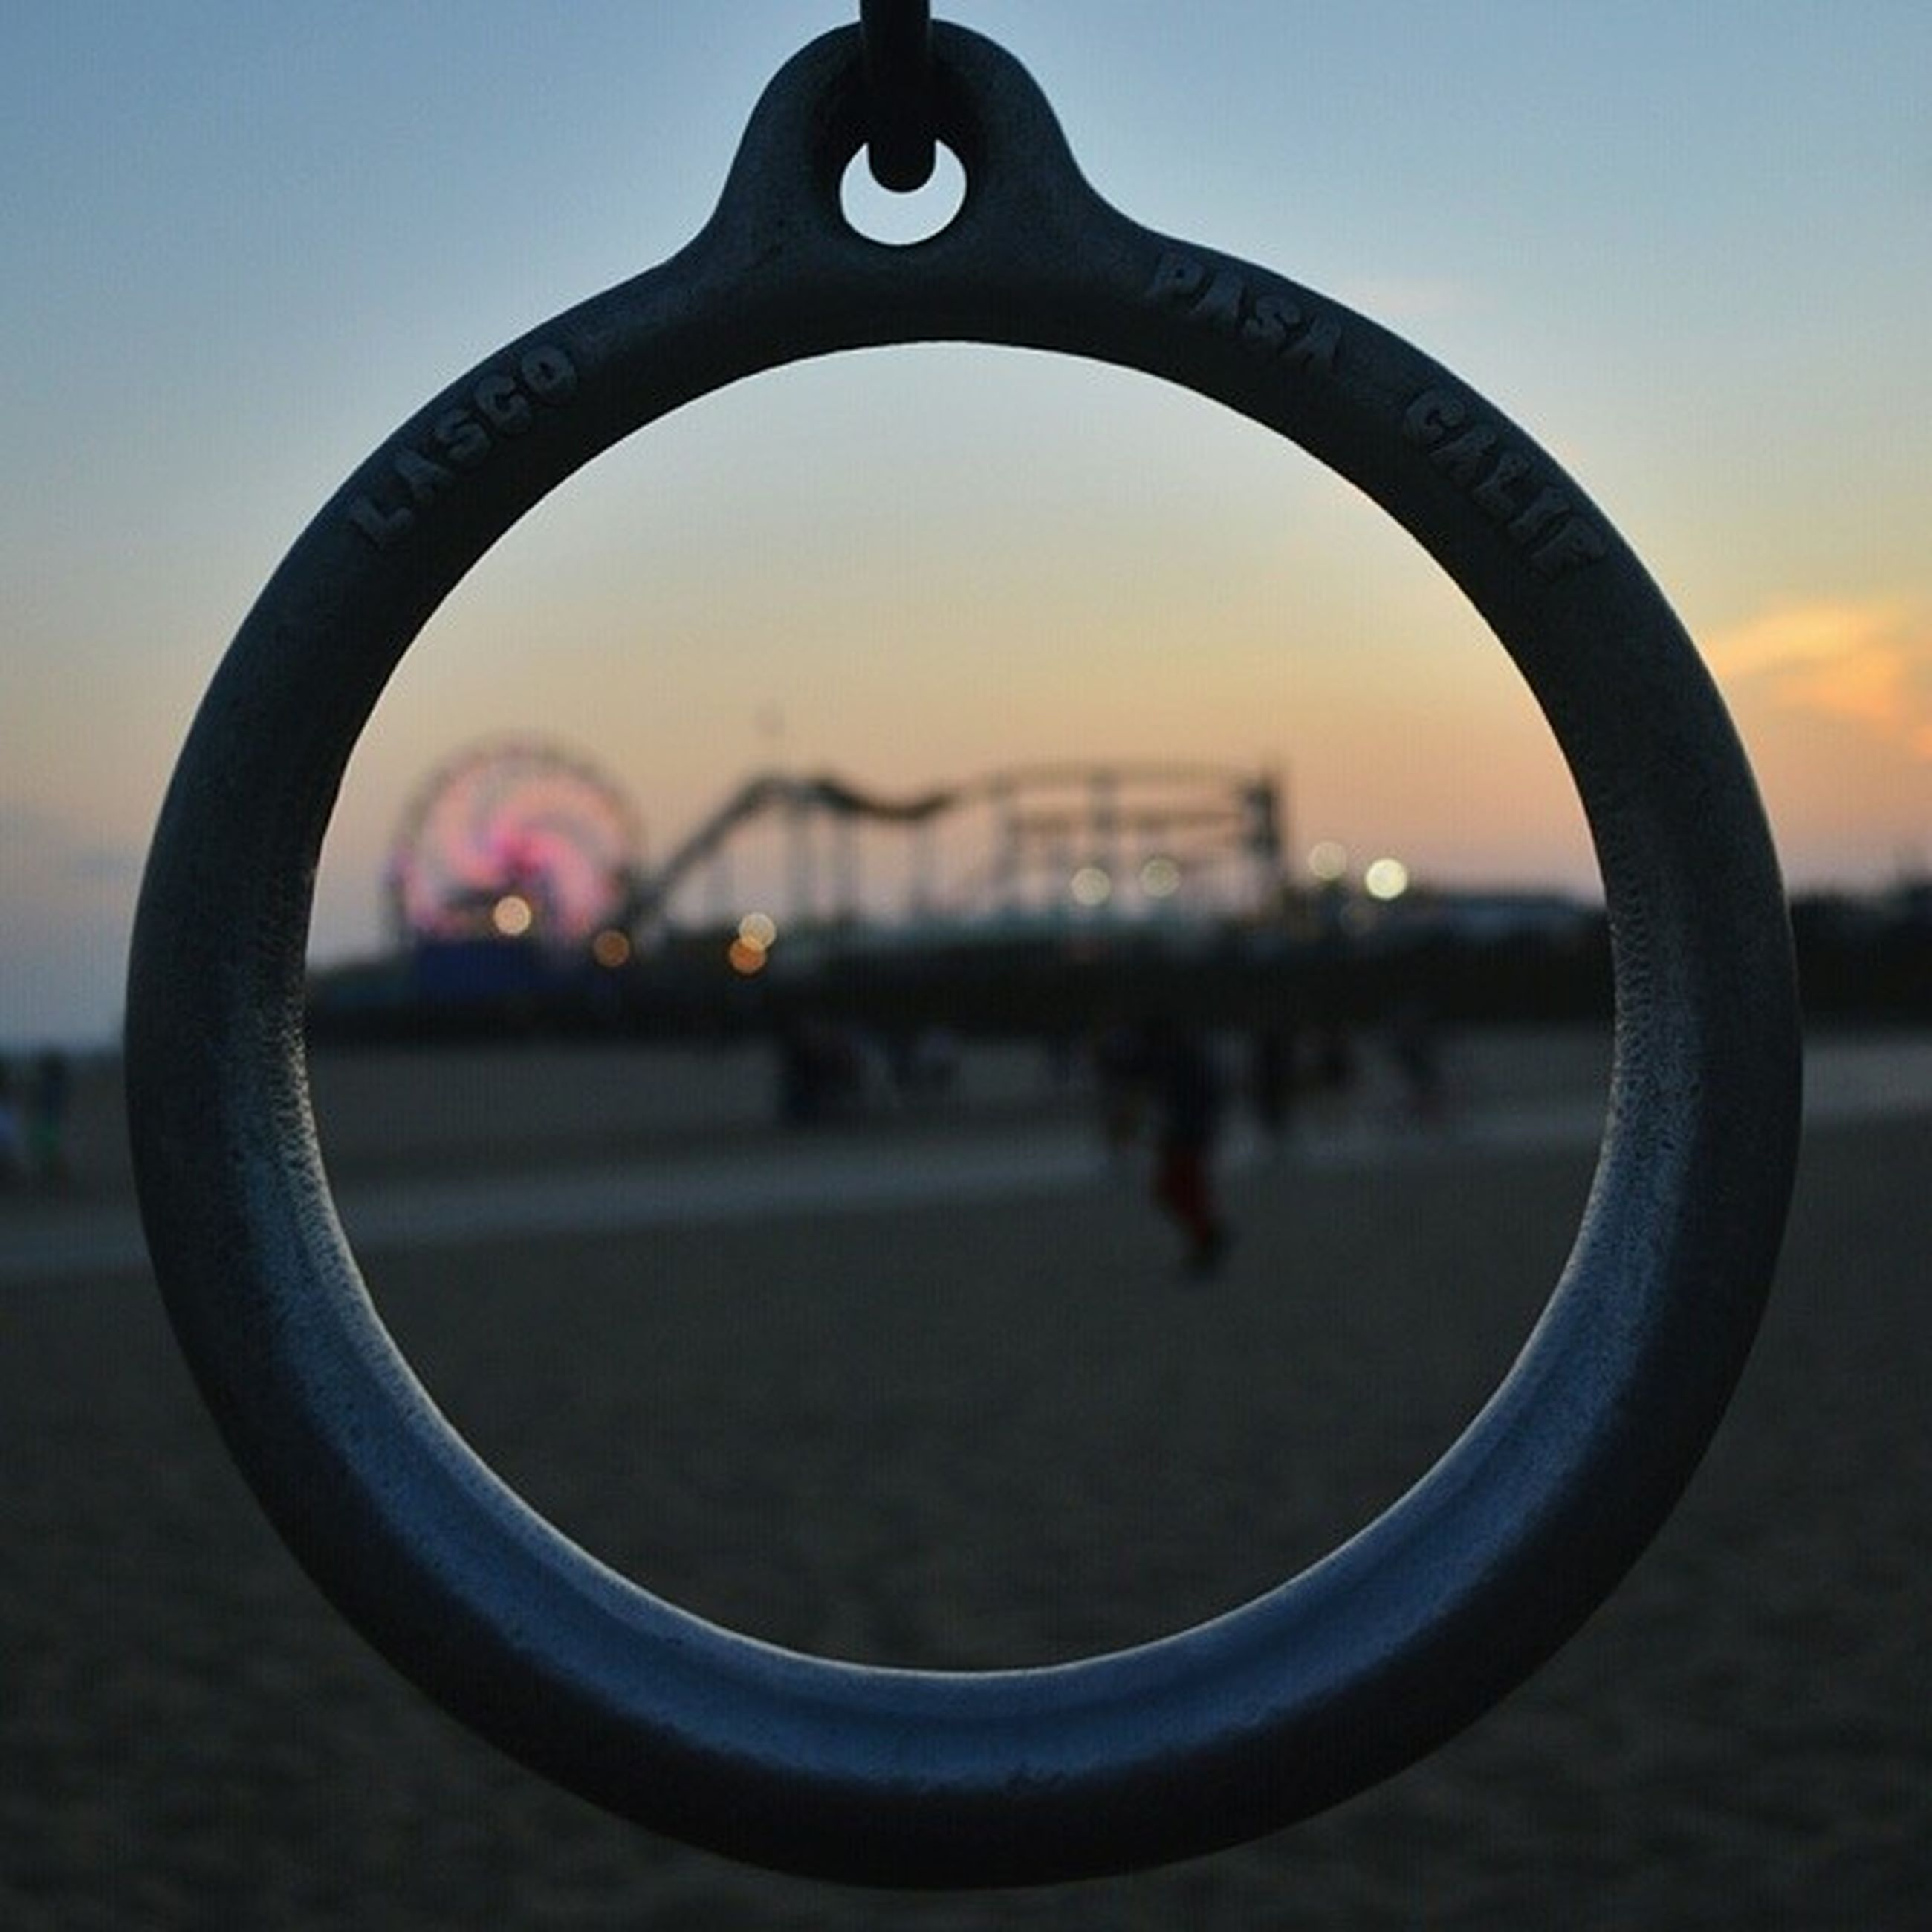 focus on foreground, metal, close-up, safety, sky, protection, circle, metallic, water, fence, security, sunset, no people, selective focus, outdoors, focus on background, sport, railing, day, city